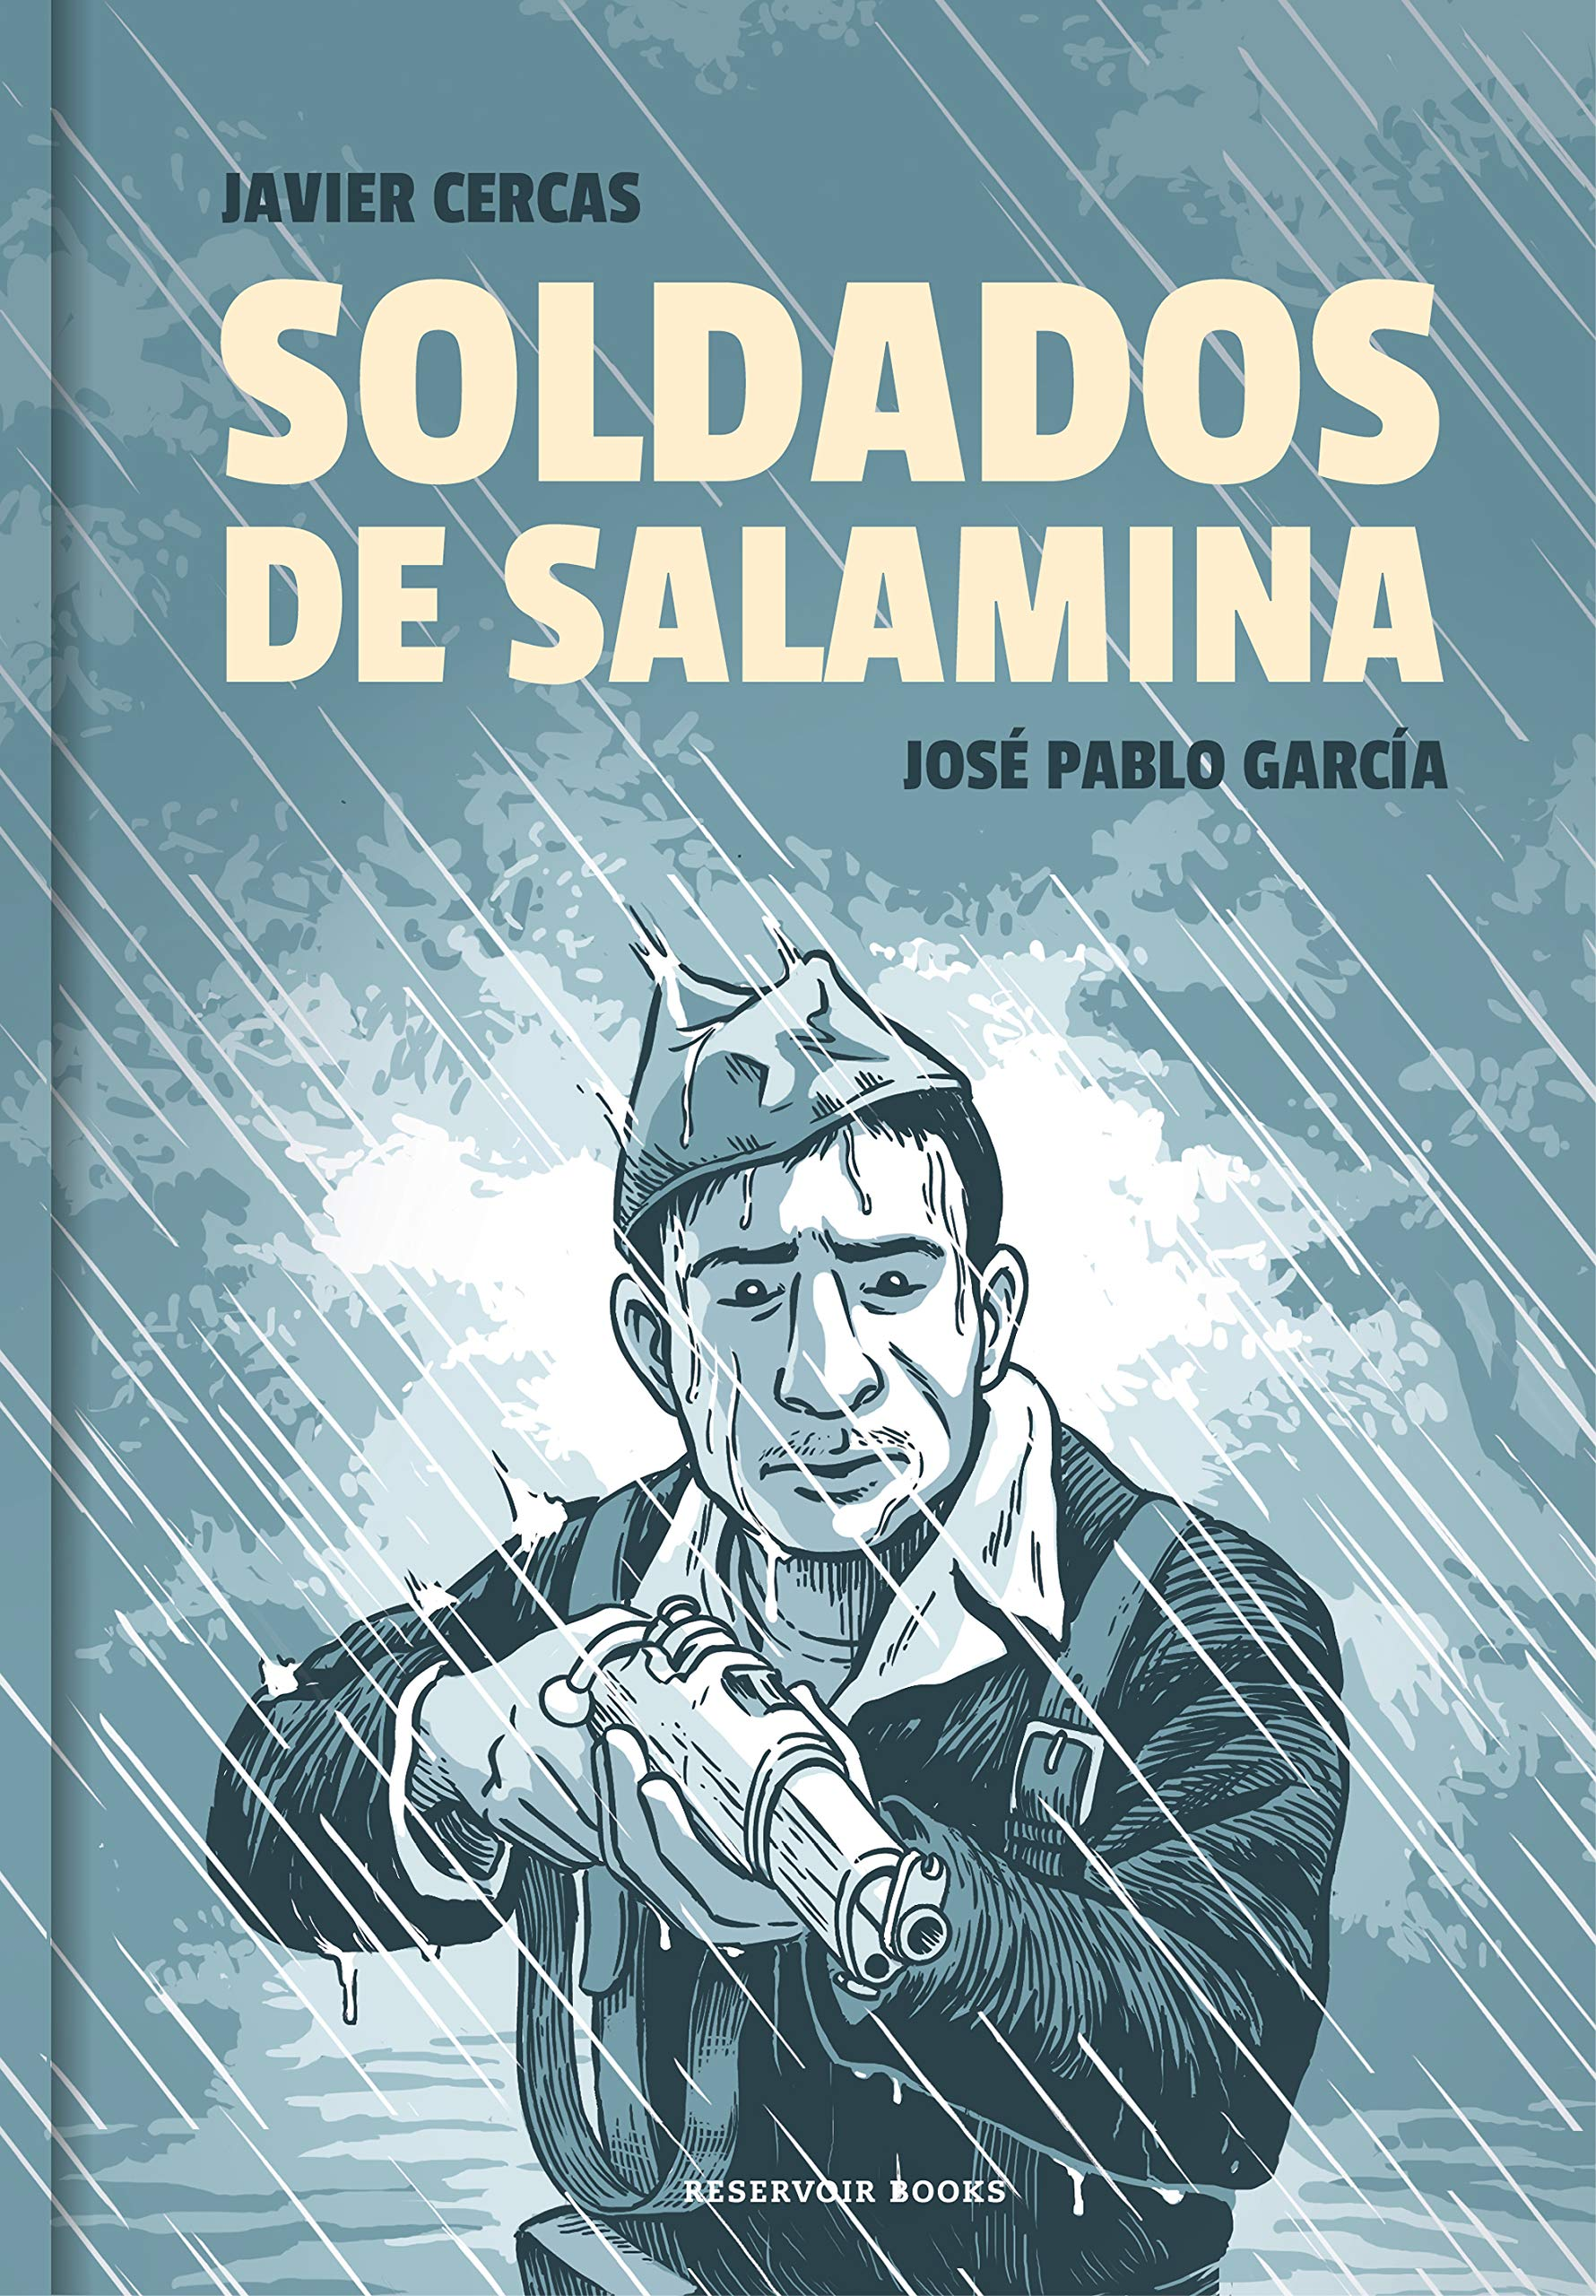 Soldados De Salamina Novela Gráfica Soldiers Of Salamis The Graphic Novel Soldados De Salamina Soldiers Of Salamis Amazon Co Uk Cercas Javier 9788417511517 Books